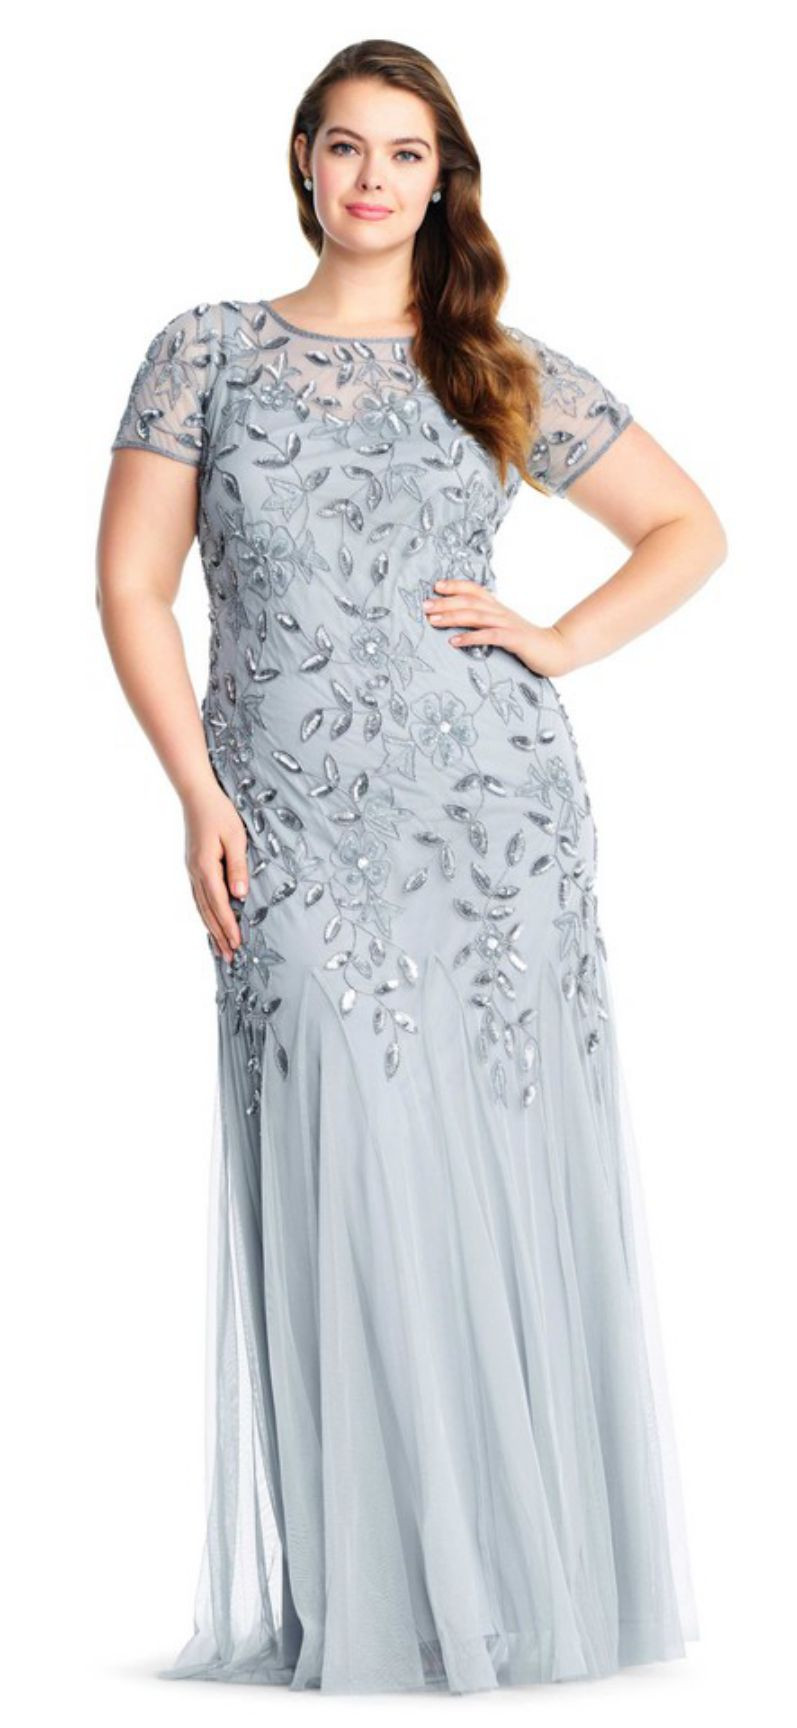 Blue Sky Floral Beaded Godet Gown Plus Size